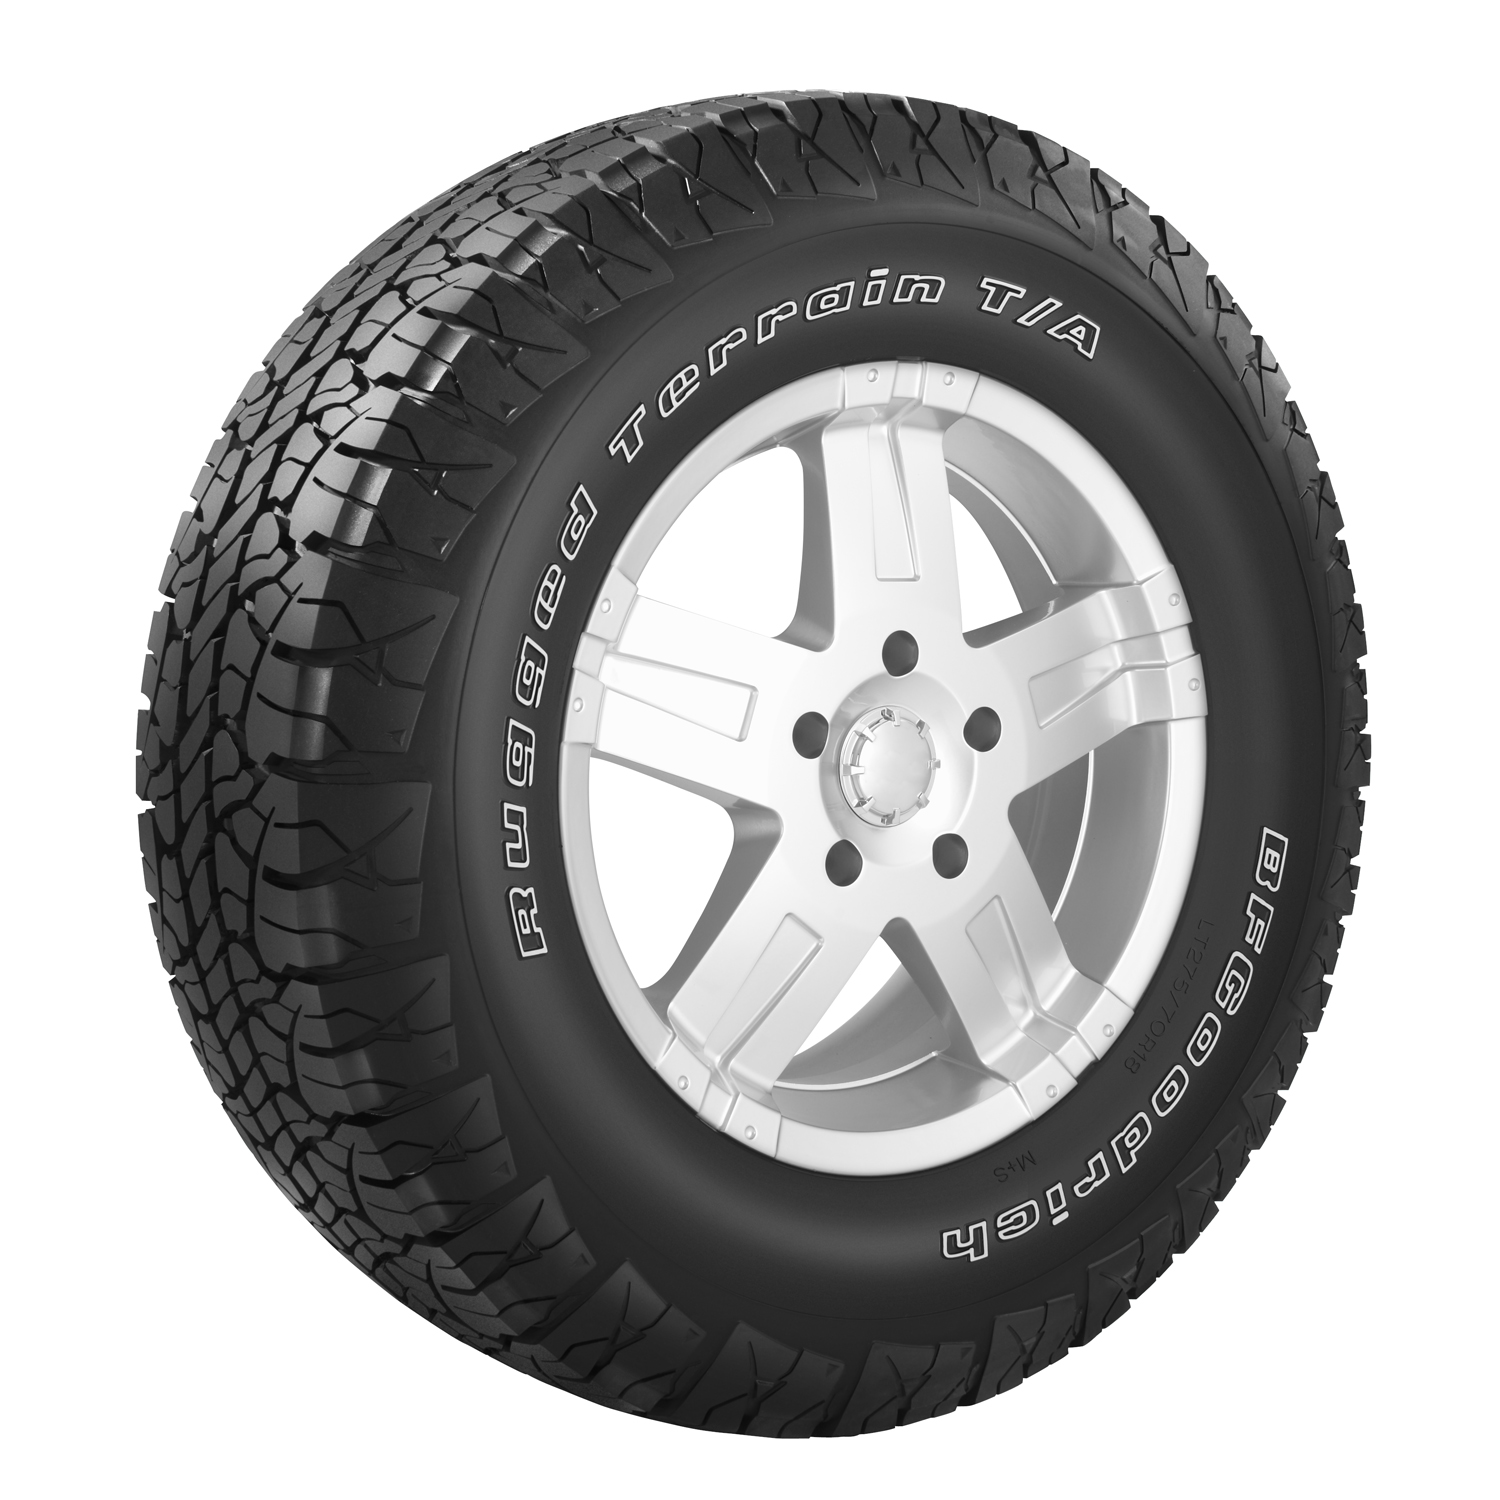 Rugged Terrain T/A - P245/65R17 105T BW - All Season Tire